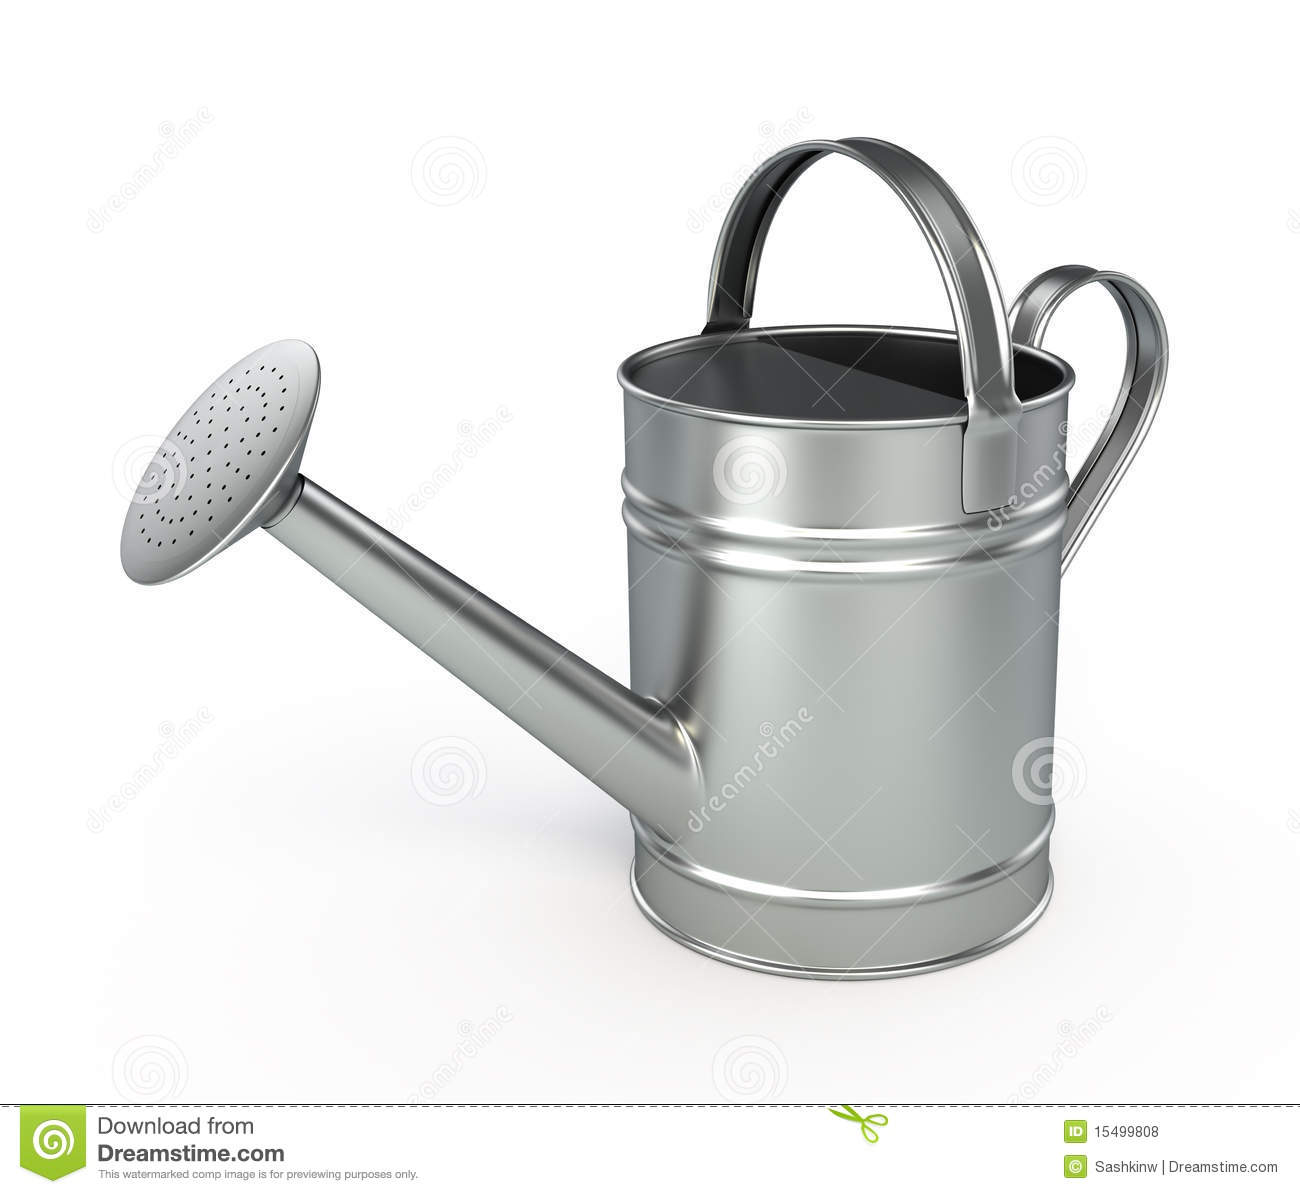 Watering can royalty free stock photos image 15499808 - Sprinkling cans ...